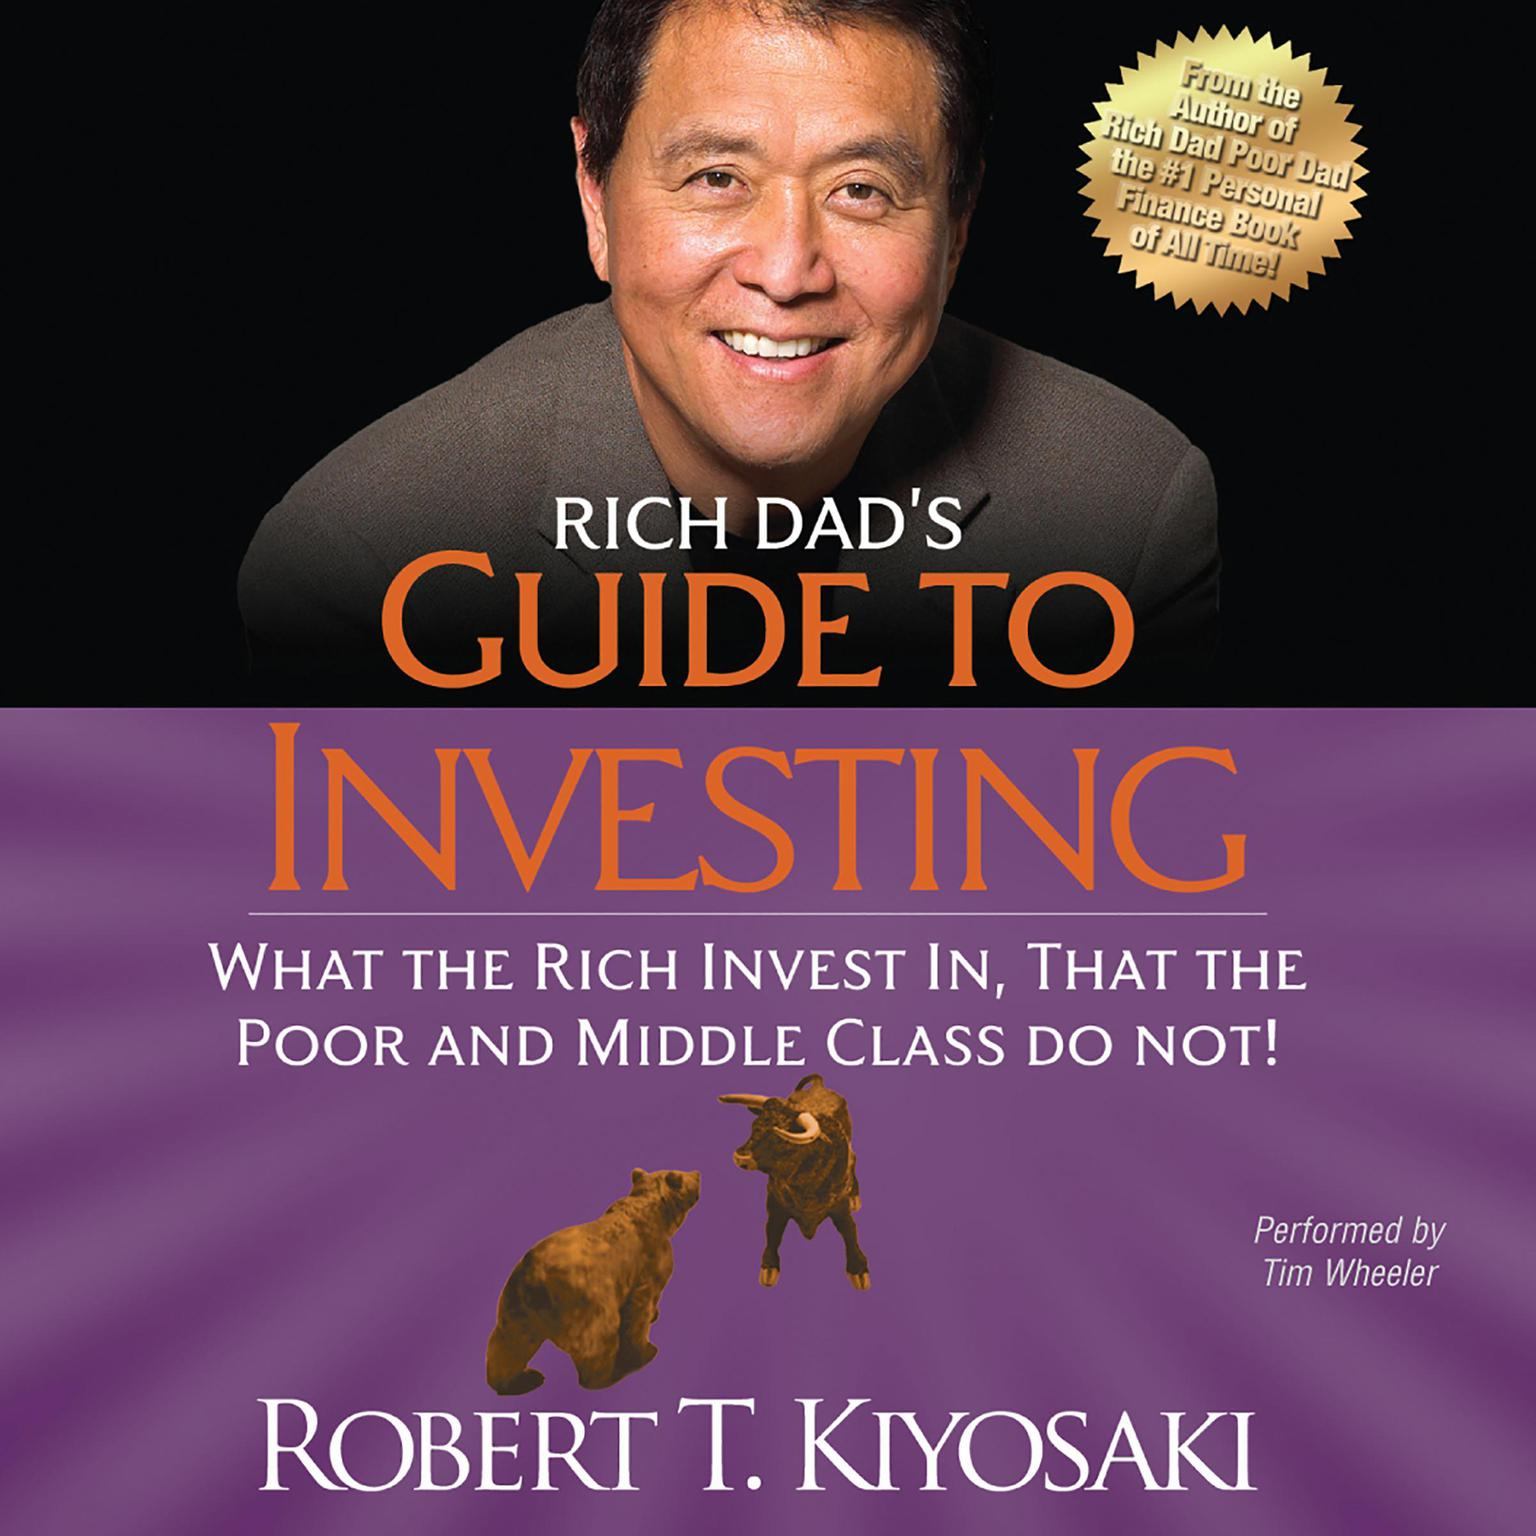 Printable Rich Dad's Guide to Investing: What the Rich Invest In, That the Poor and Middle Class Do Not! Audiobook Cover Art